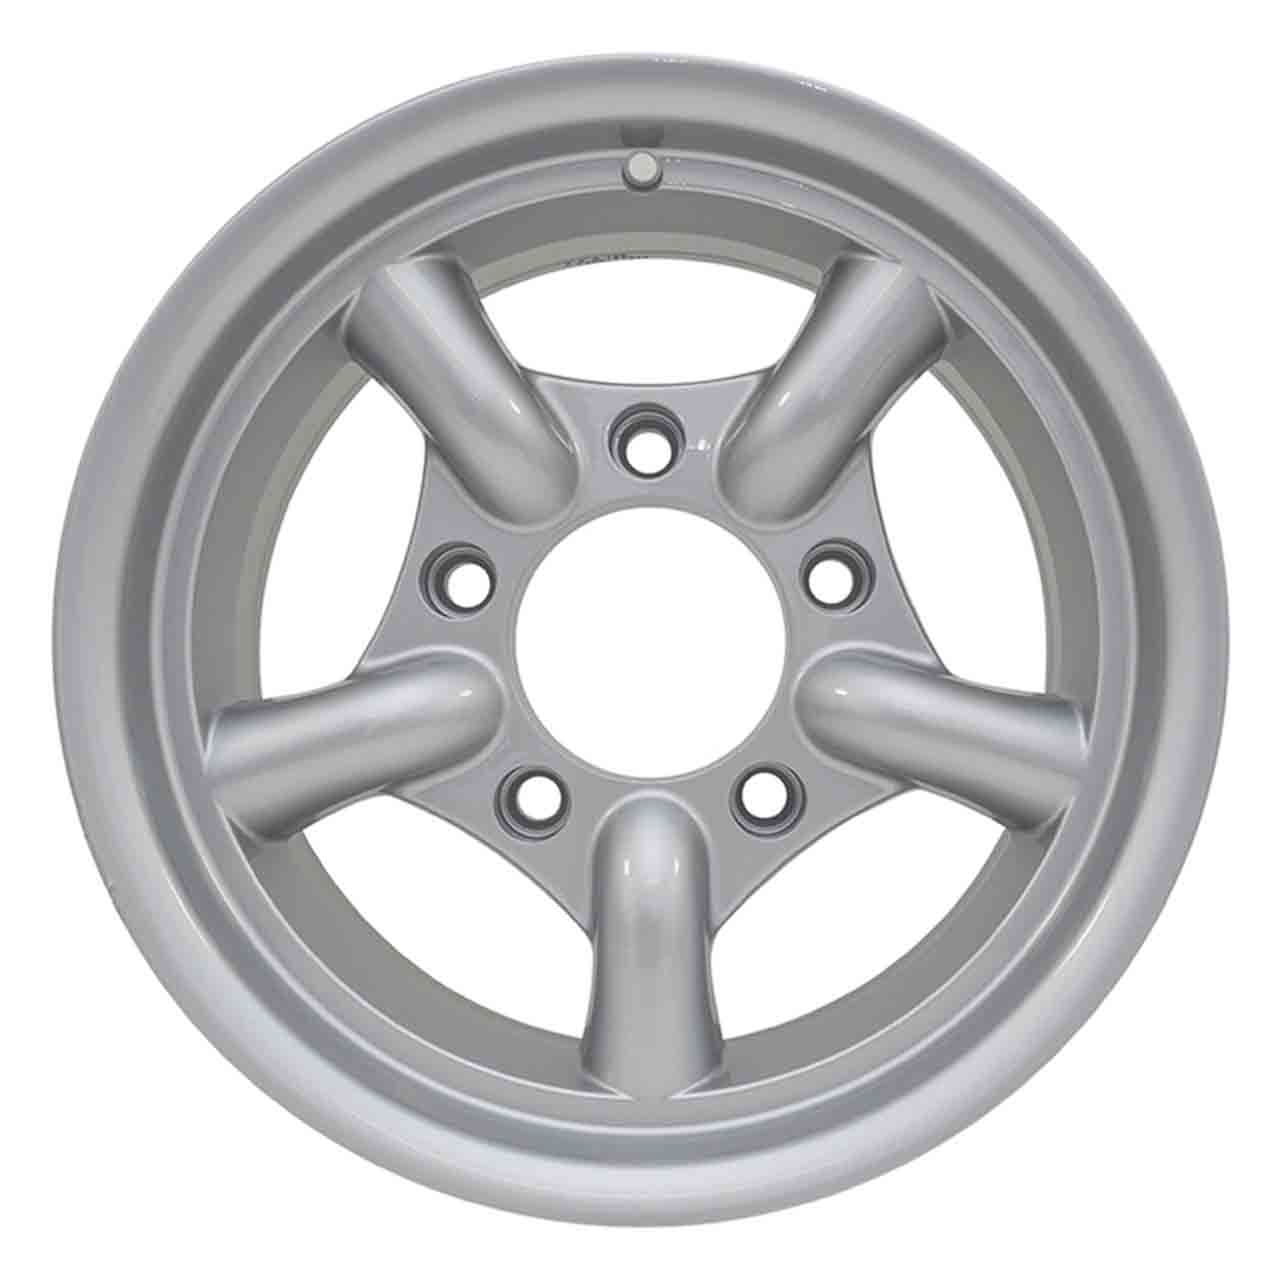 Defender Discovery 1 Range Rover Classic Ruota 16 X 8 Colore Argento GR2-05776